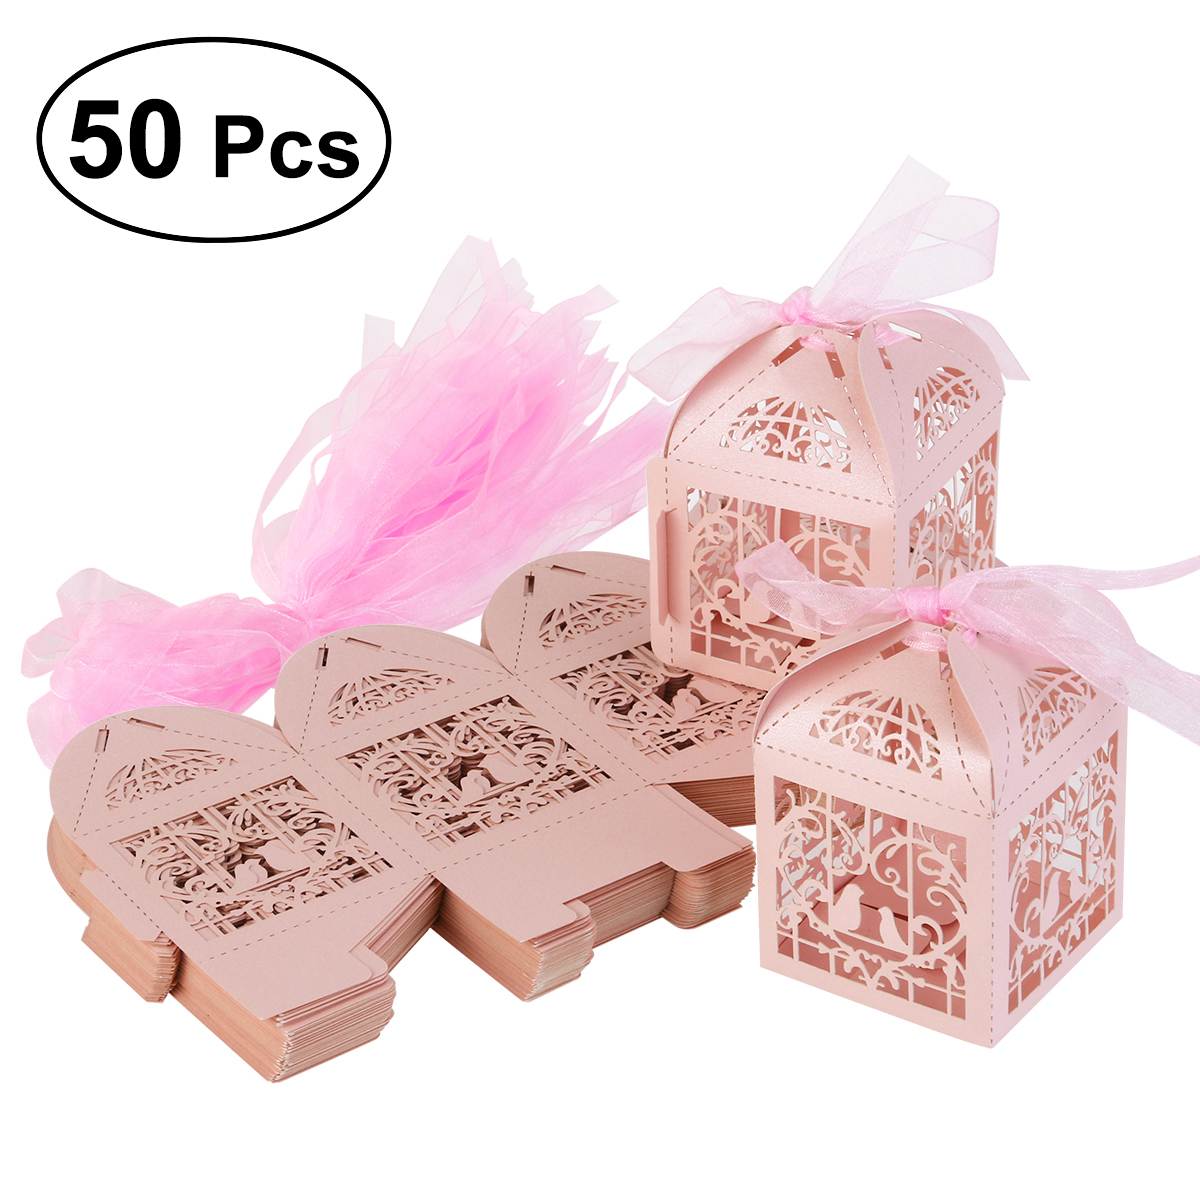 50PCS Hollow Laser Cut Wedding Favor Boxes with Ribbons for Wedding ...